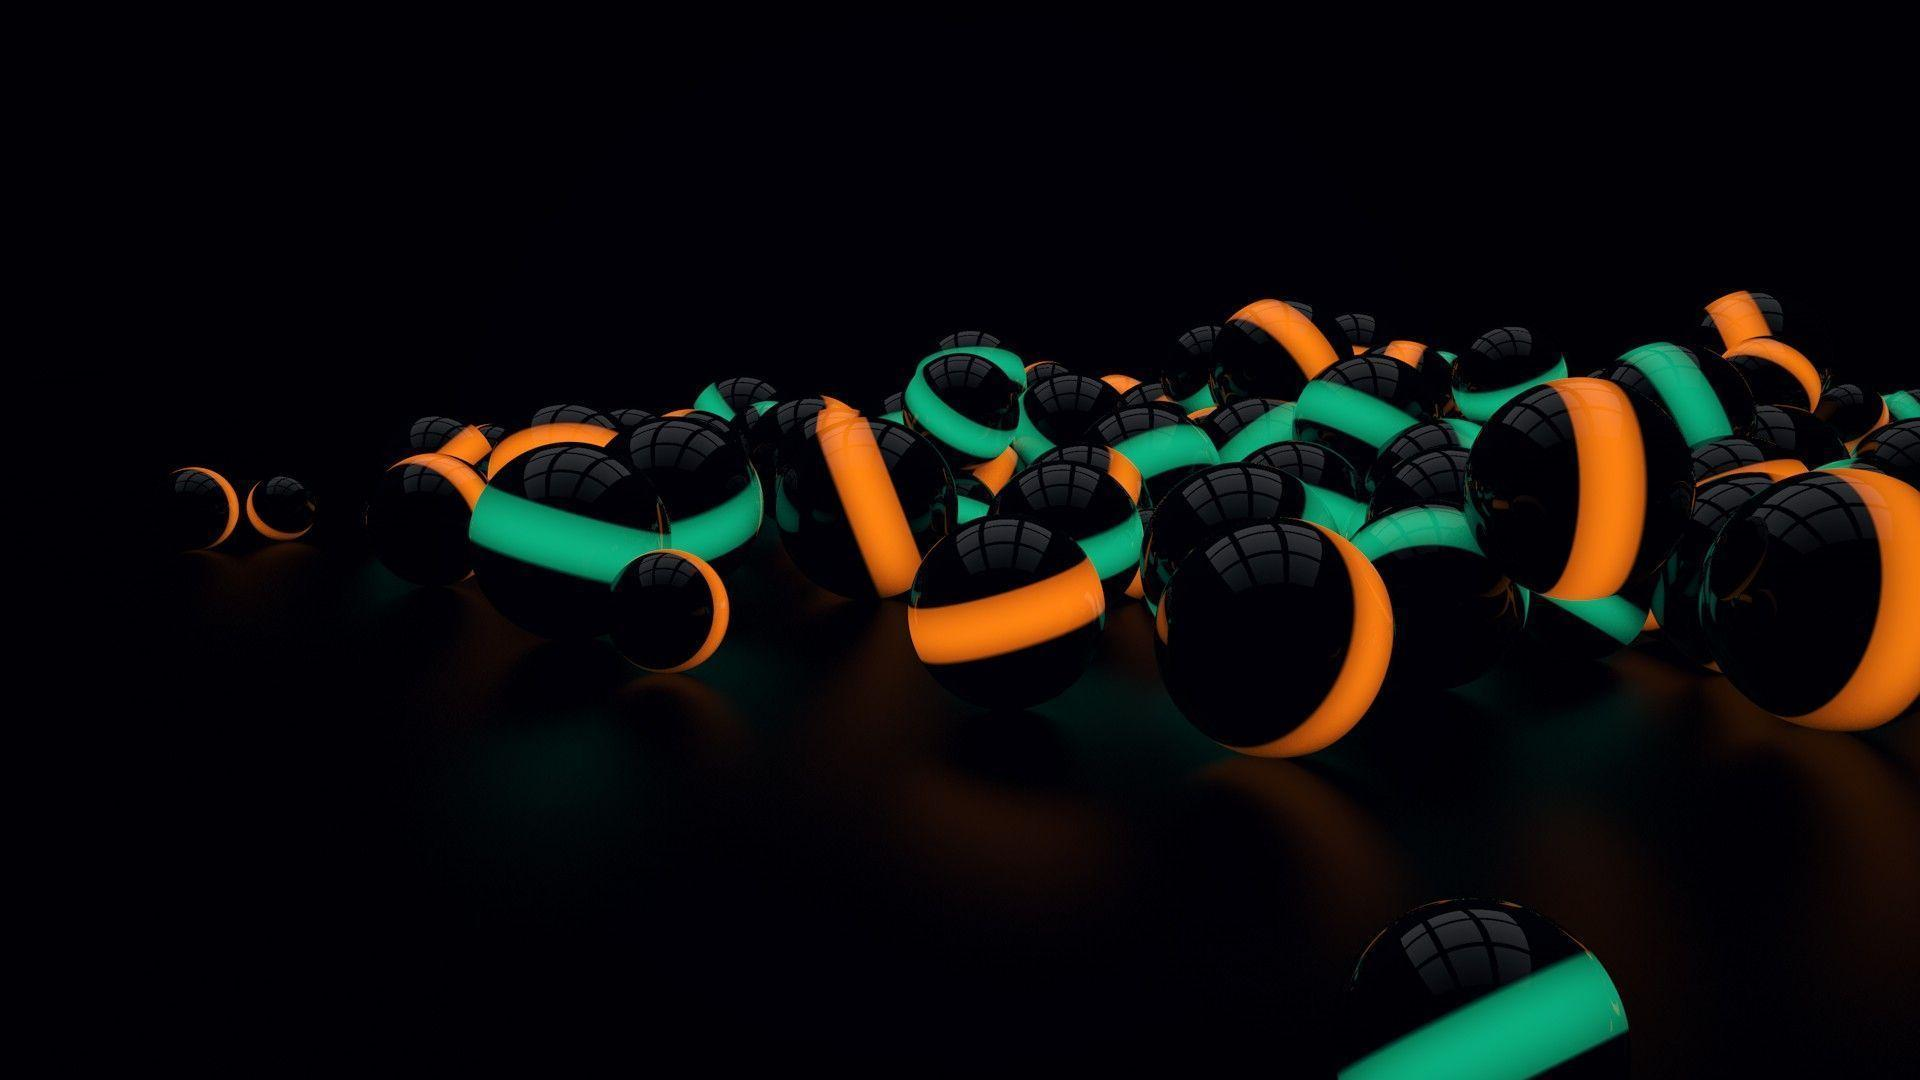 cinema 4d wallpapers 1366x768 - photo #13